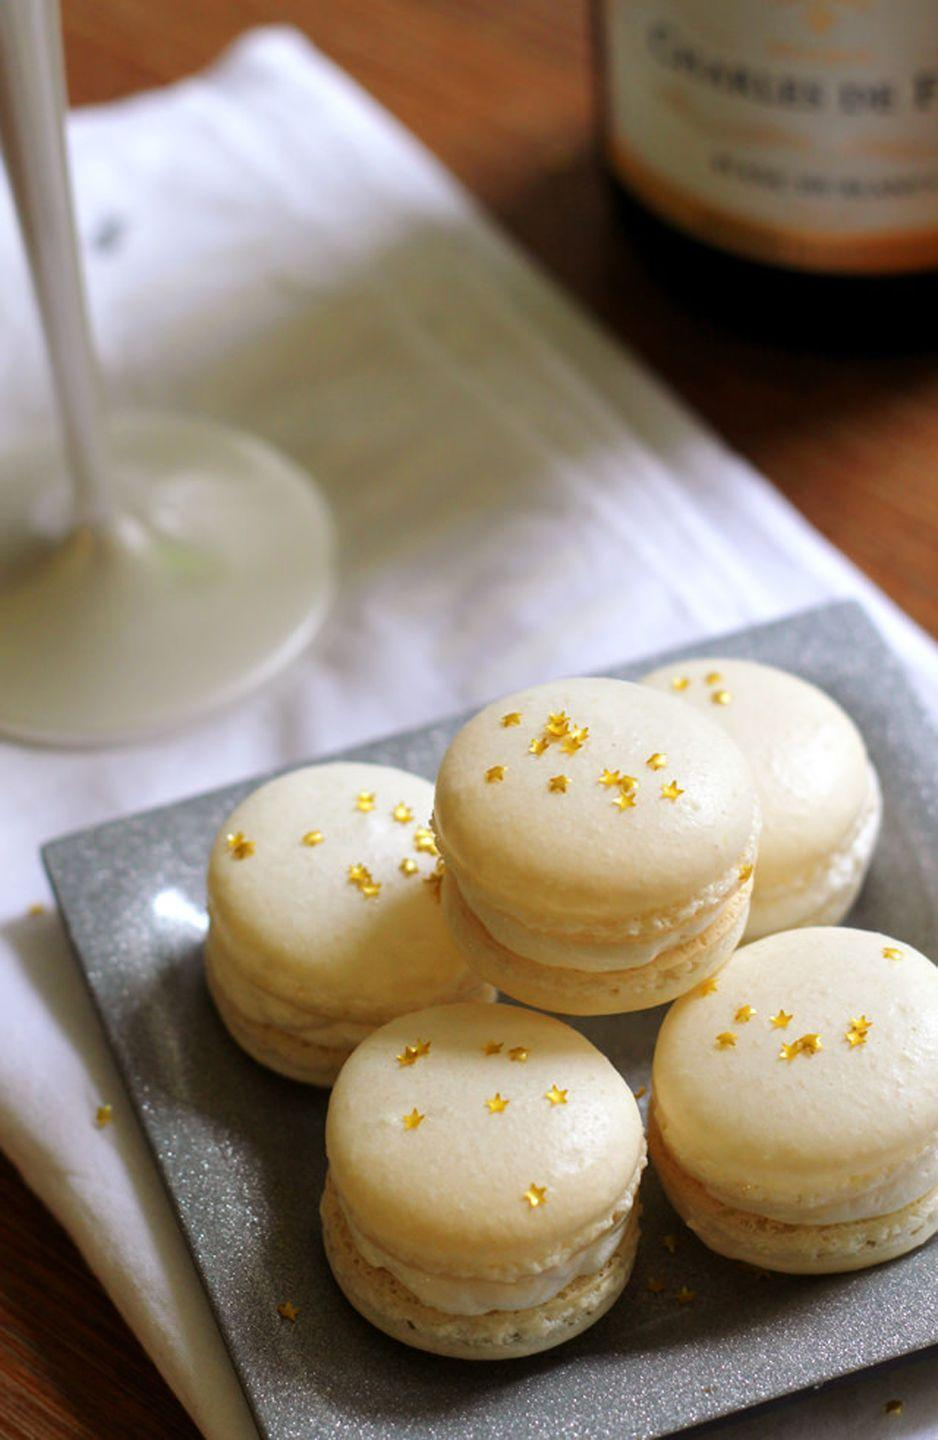 "<p>Bring a little French flavor to your Mother's Day celebration. Made with Champagne-infused buttercream, these macarons are a decadent treat Mom definitely deserves. </p><p><strong>Get the recipe at <a href=""https://joanne-eatswellwithothers.com/2014/12/champagne-macarons.html"" rel=""nofollow noopener"" target=""_blank"" data-ylk=""slk:Eats Well With Others"" class=""link rapid-noclick-resp"">Eats Well With Others</a>.</strong></p><p><a class=""link rapid-noclick-resp"" href=""https://www.amazon.com/Ateco-3124-Plastic-Decorating-Reusable/dp/B000638B34?tag=syn-yahoo-20&ascsubtag=%5Bartid%7C10050.g.4238%5Bsrc%7Cyahoo-us"" rel=""nofollow noopener"" target=""_blank"" data-ylk=""slk:SHOP PIPING BAGS"">SHOP PIPING BAGS</a> </p>"